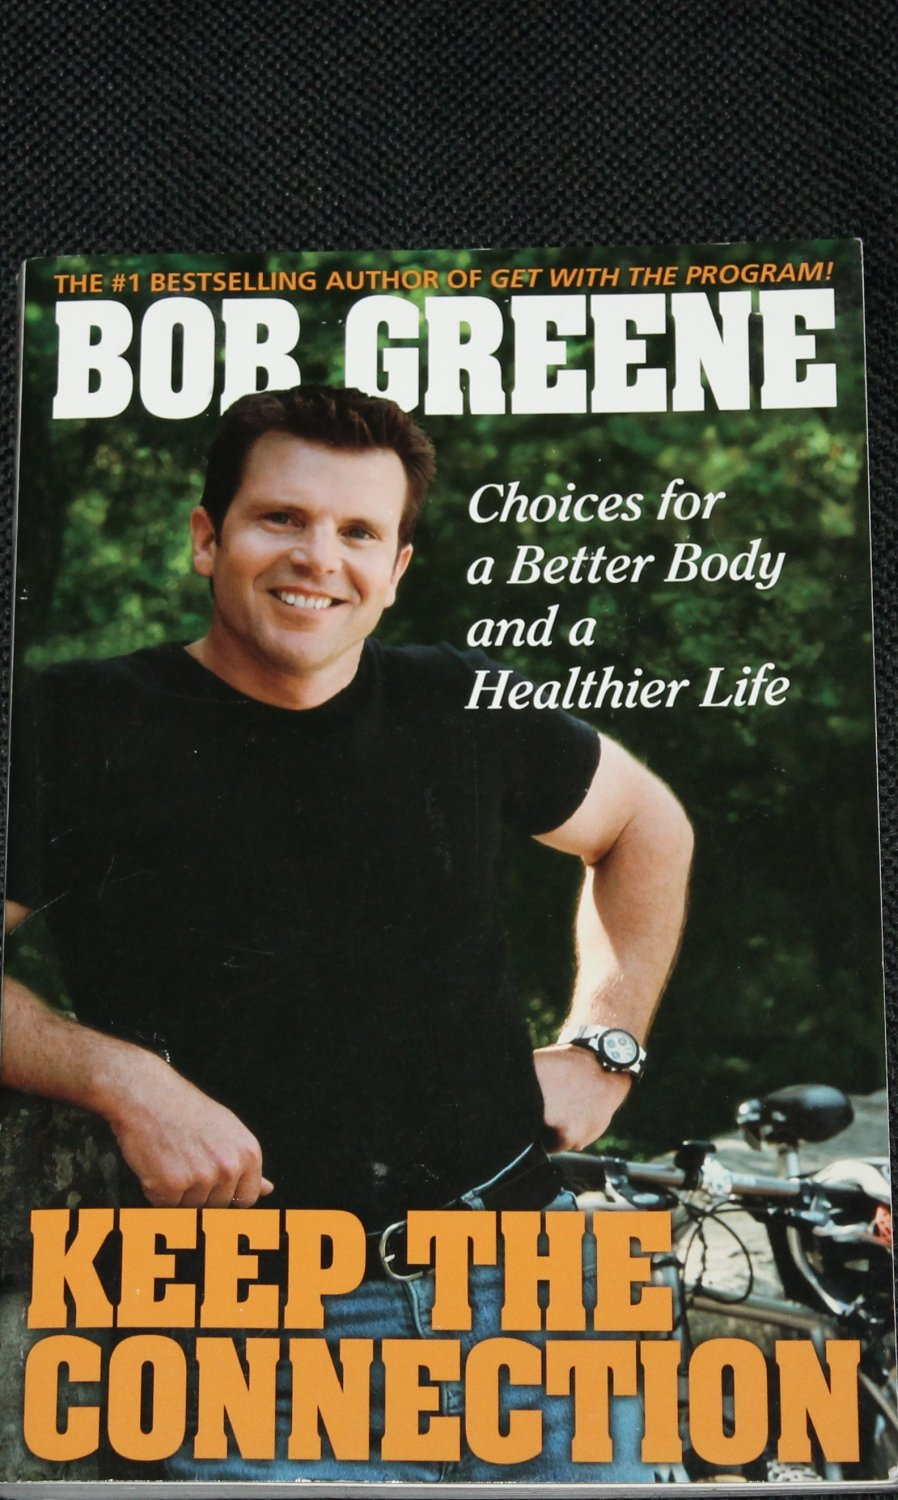 Keep the Connection - Bob Greene fitness book health